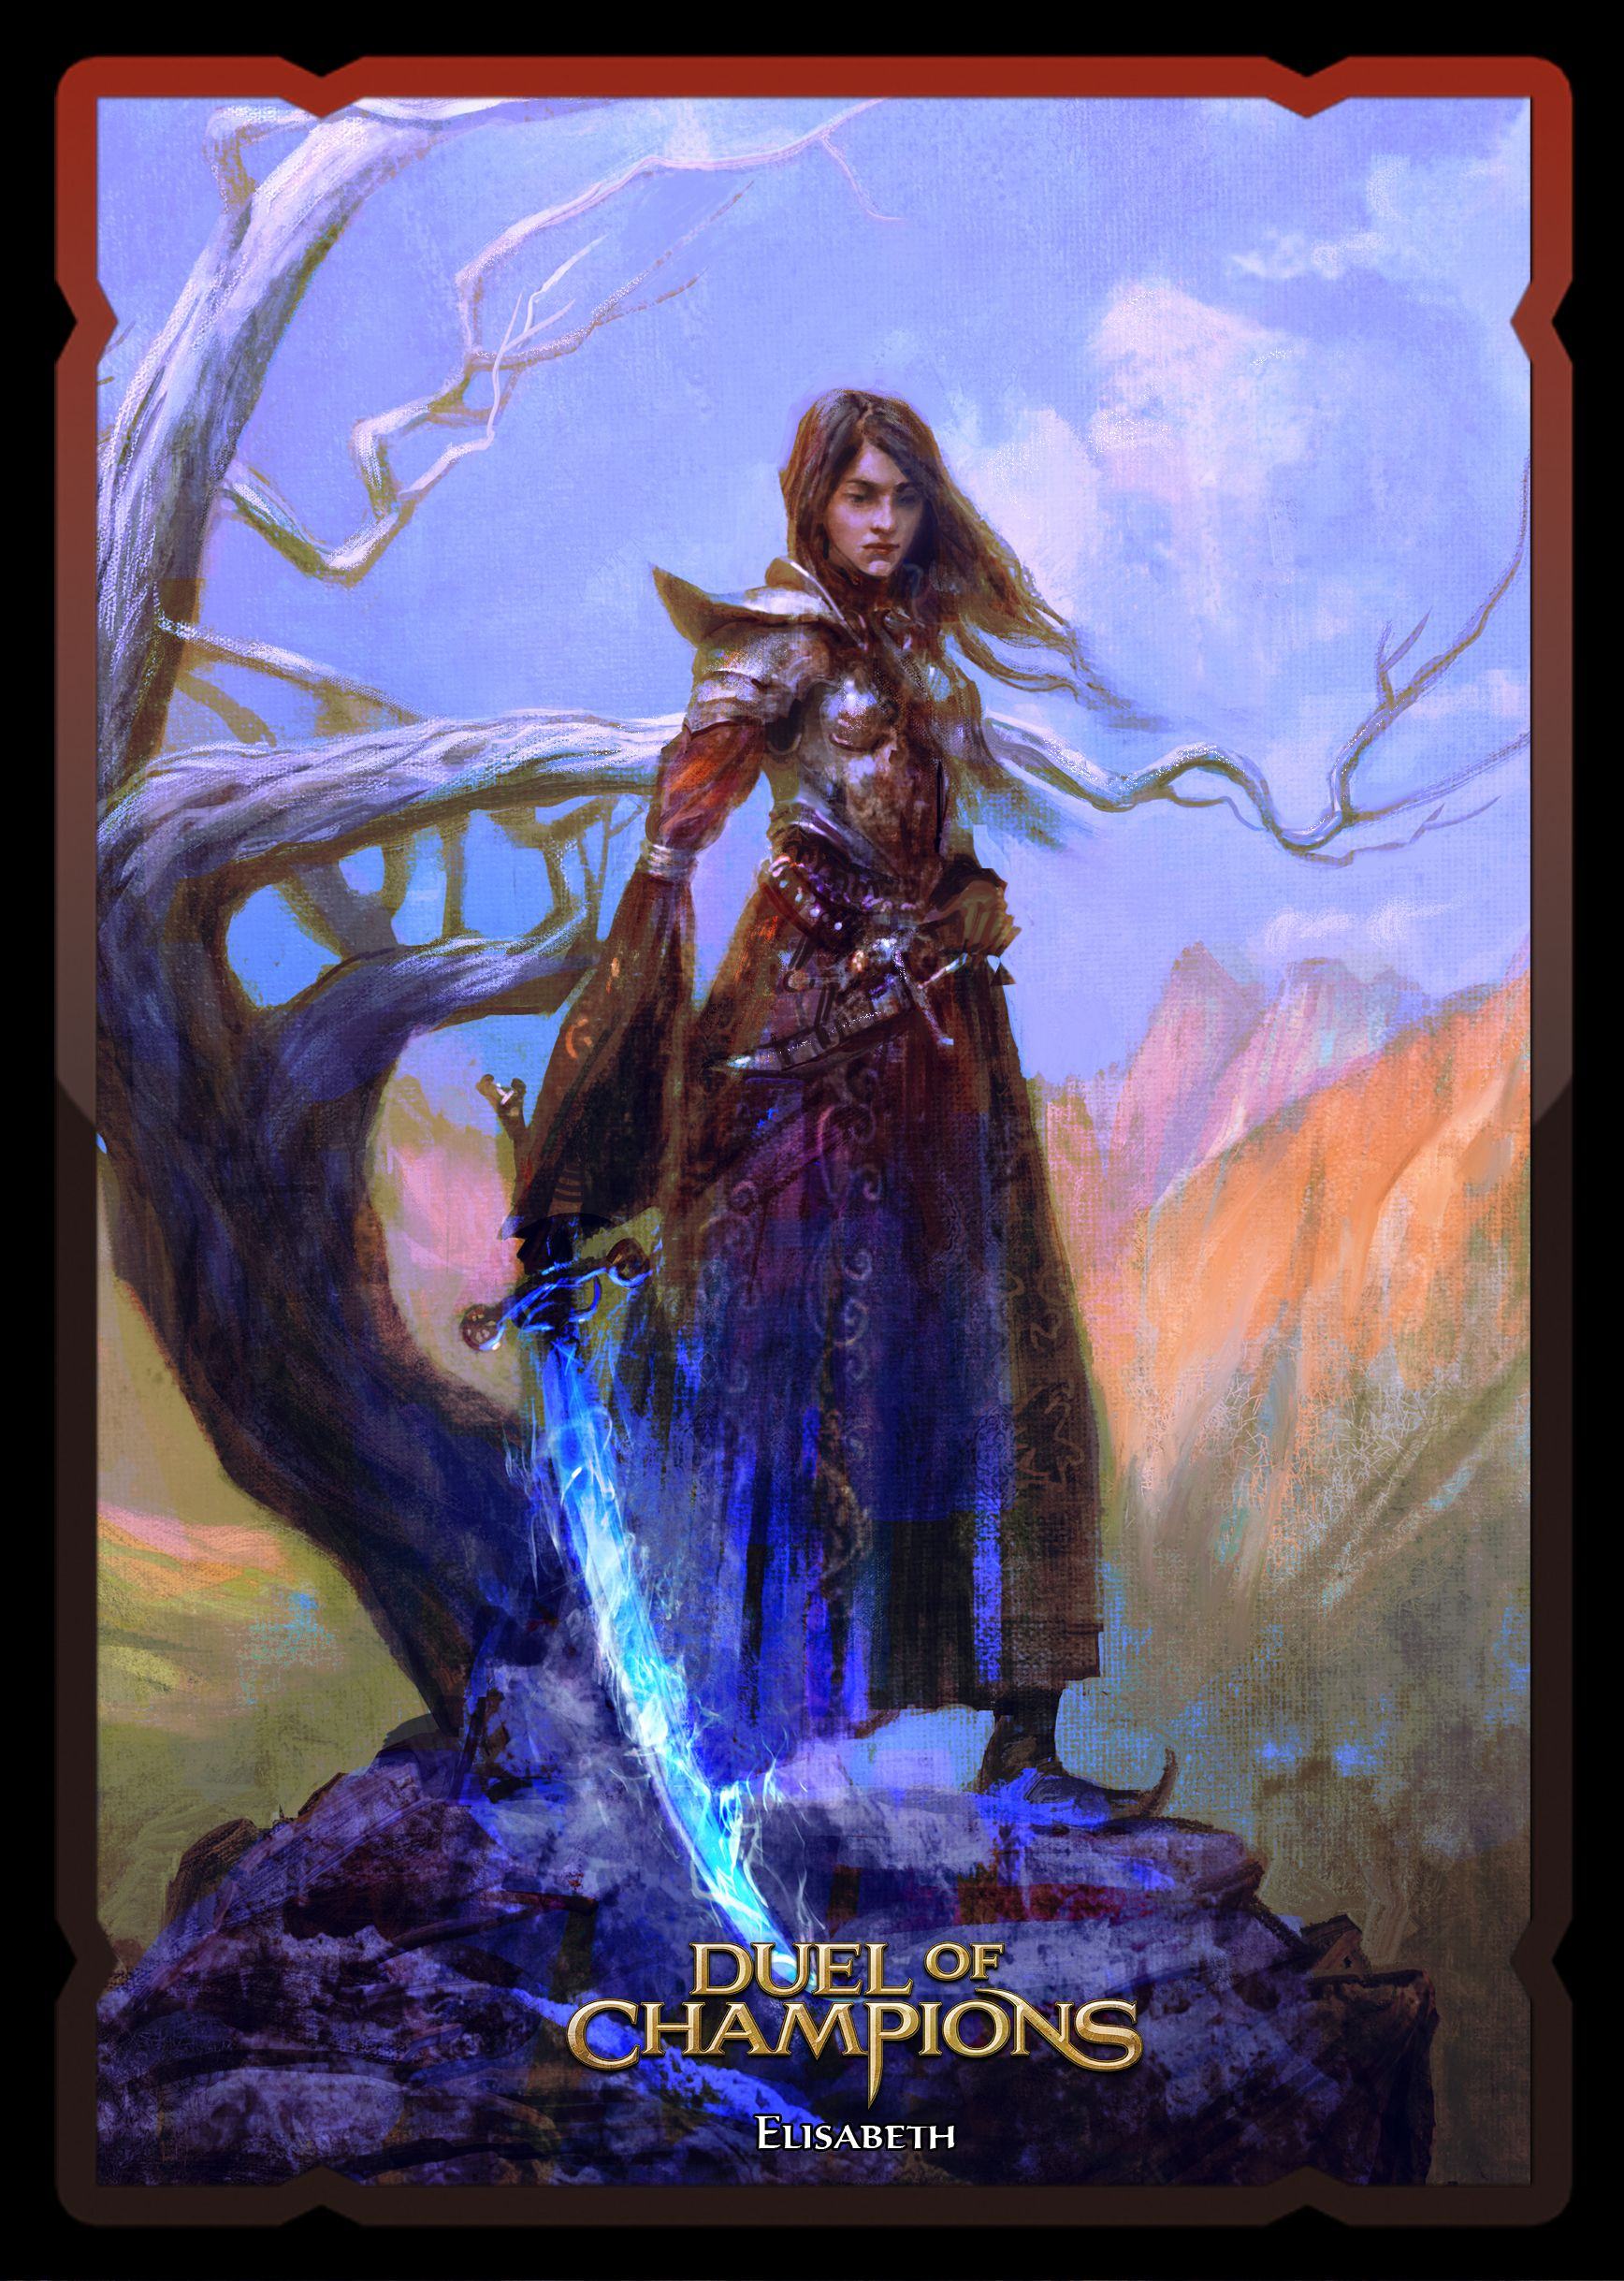 Elisabeth S Card In Duel Of Champions 1736 X 2438